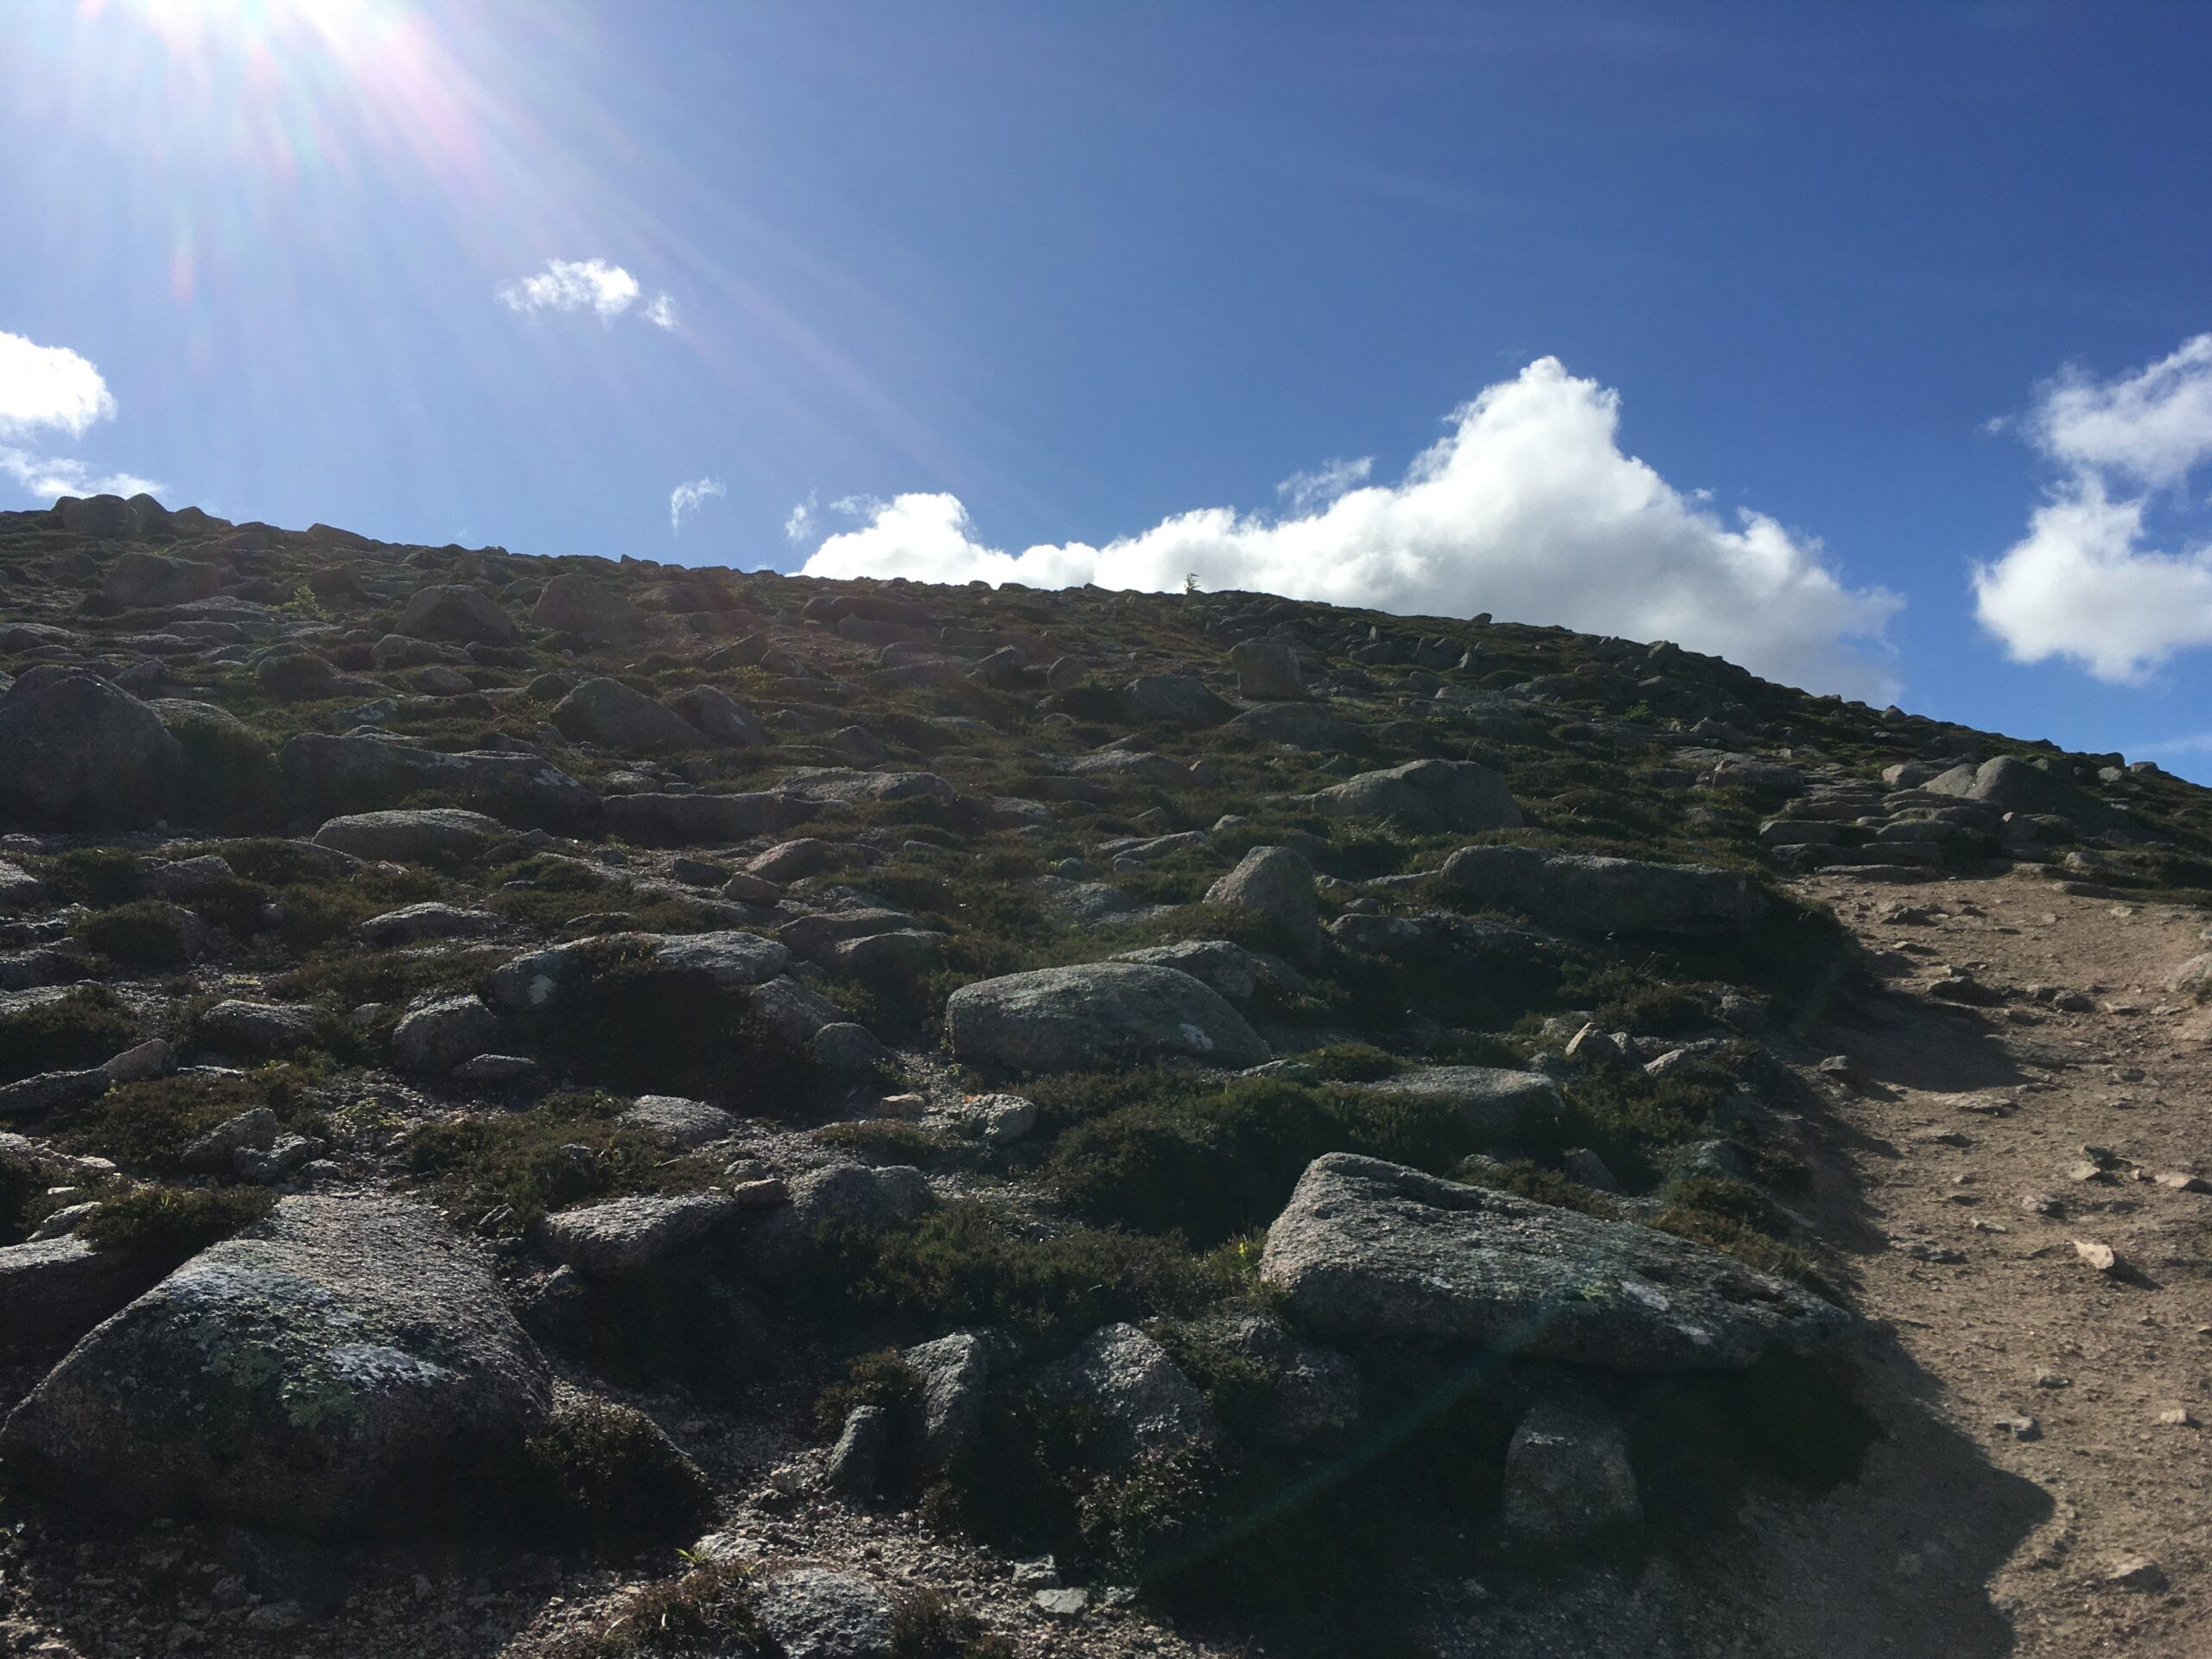 Looking up the Ben Rinnes climb